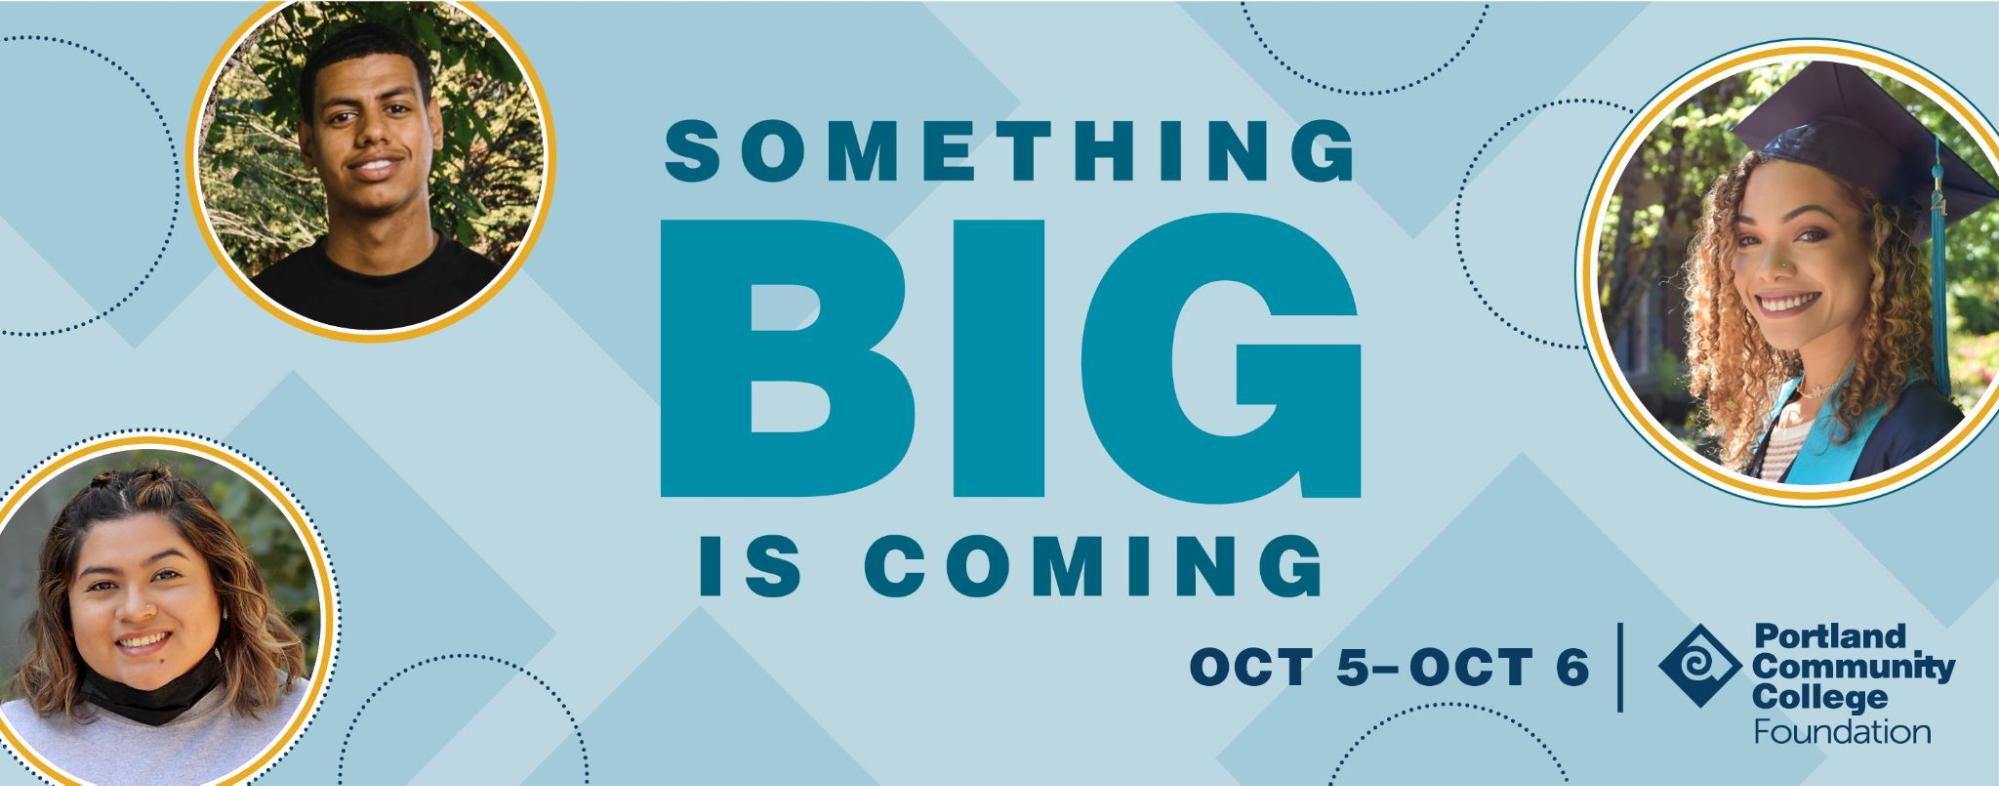 Something big is coming - Big Give Day October 5 and 6